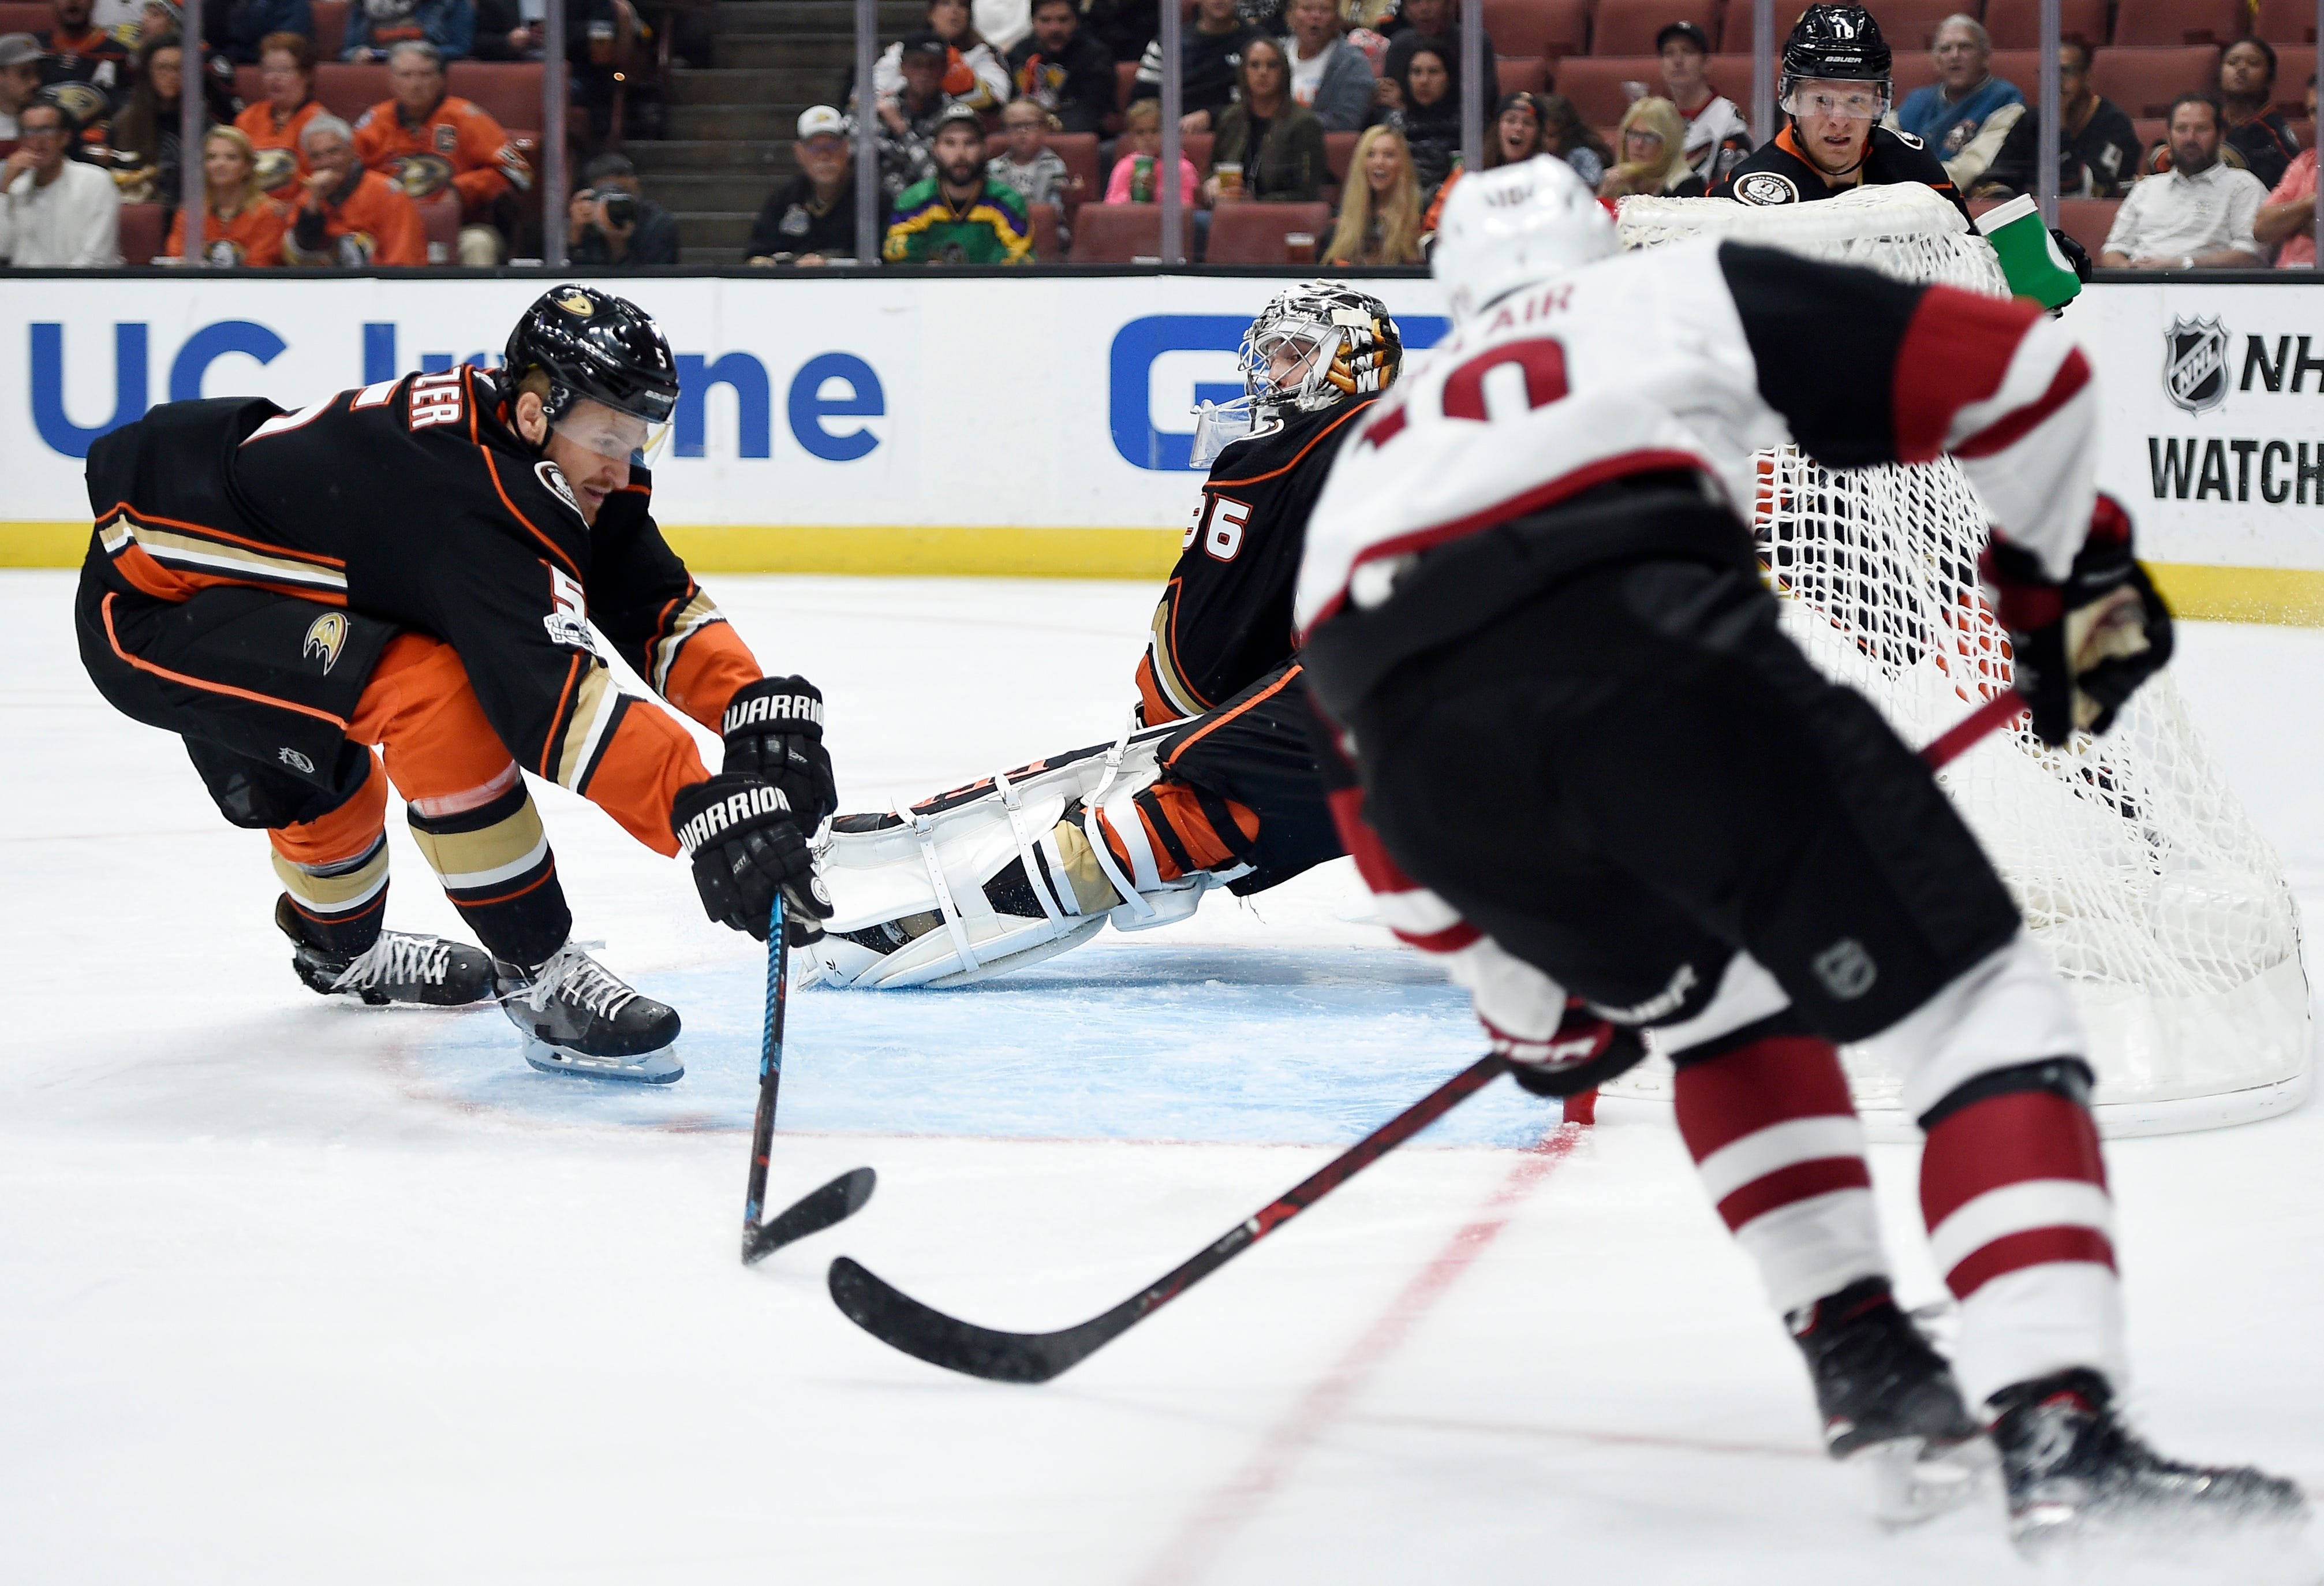 Ducks rally from 3 goals down to beat Coyotes 5-4